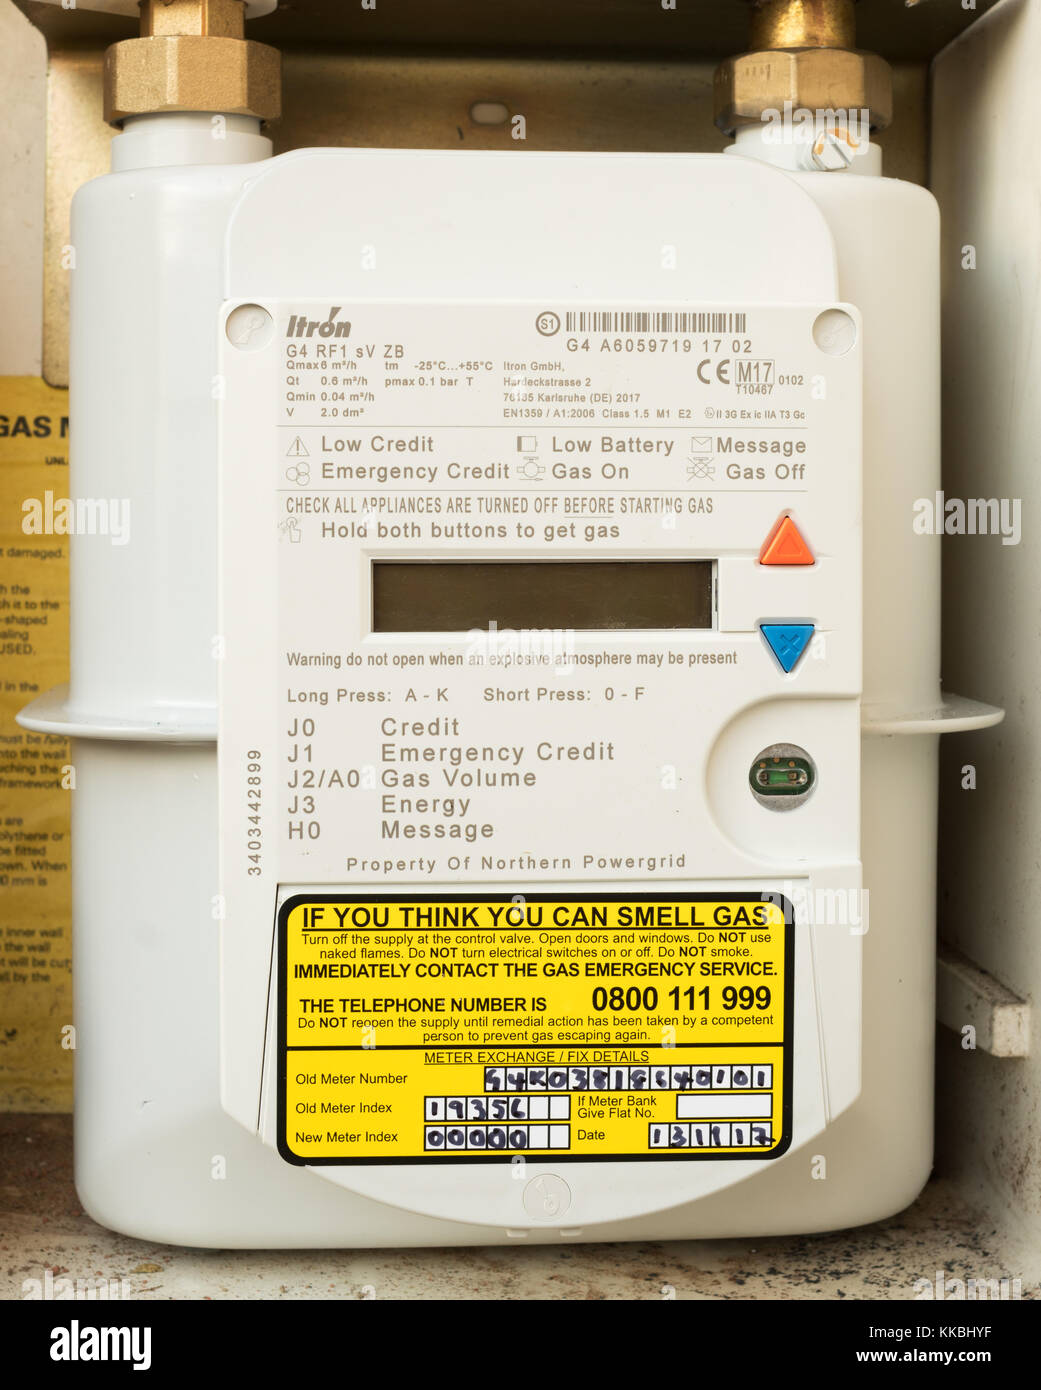 Northern Powergrid Itron smart gas meter fitted in a domestic house, north east England, UK - Stock Image